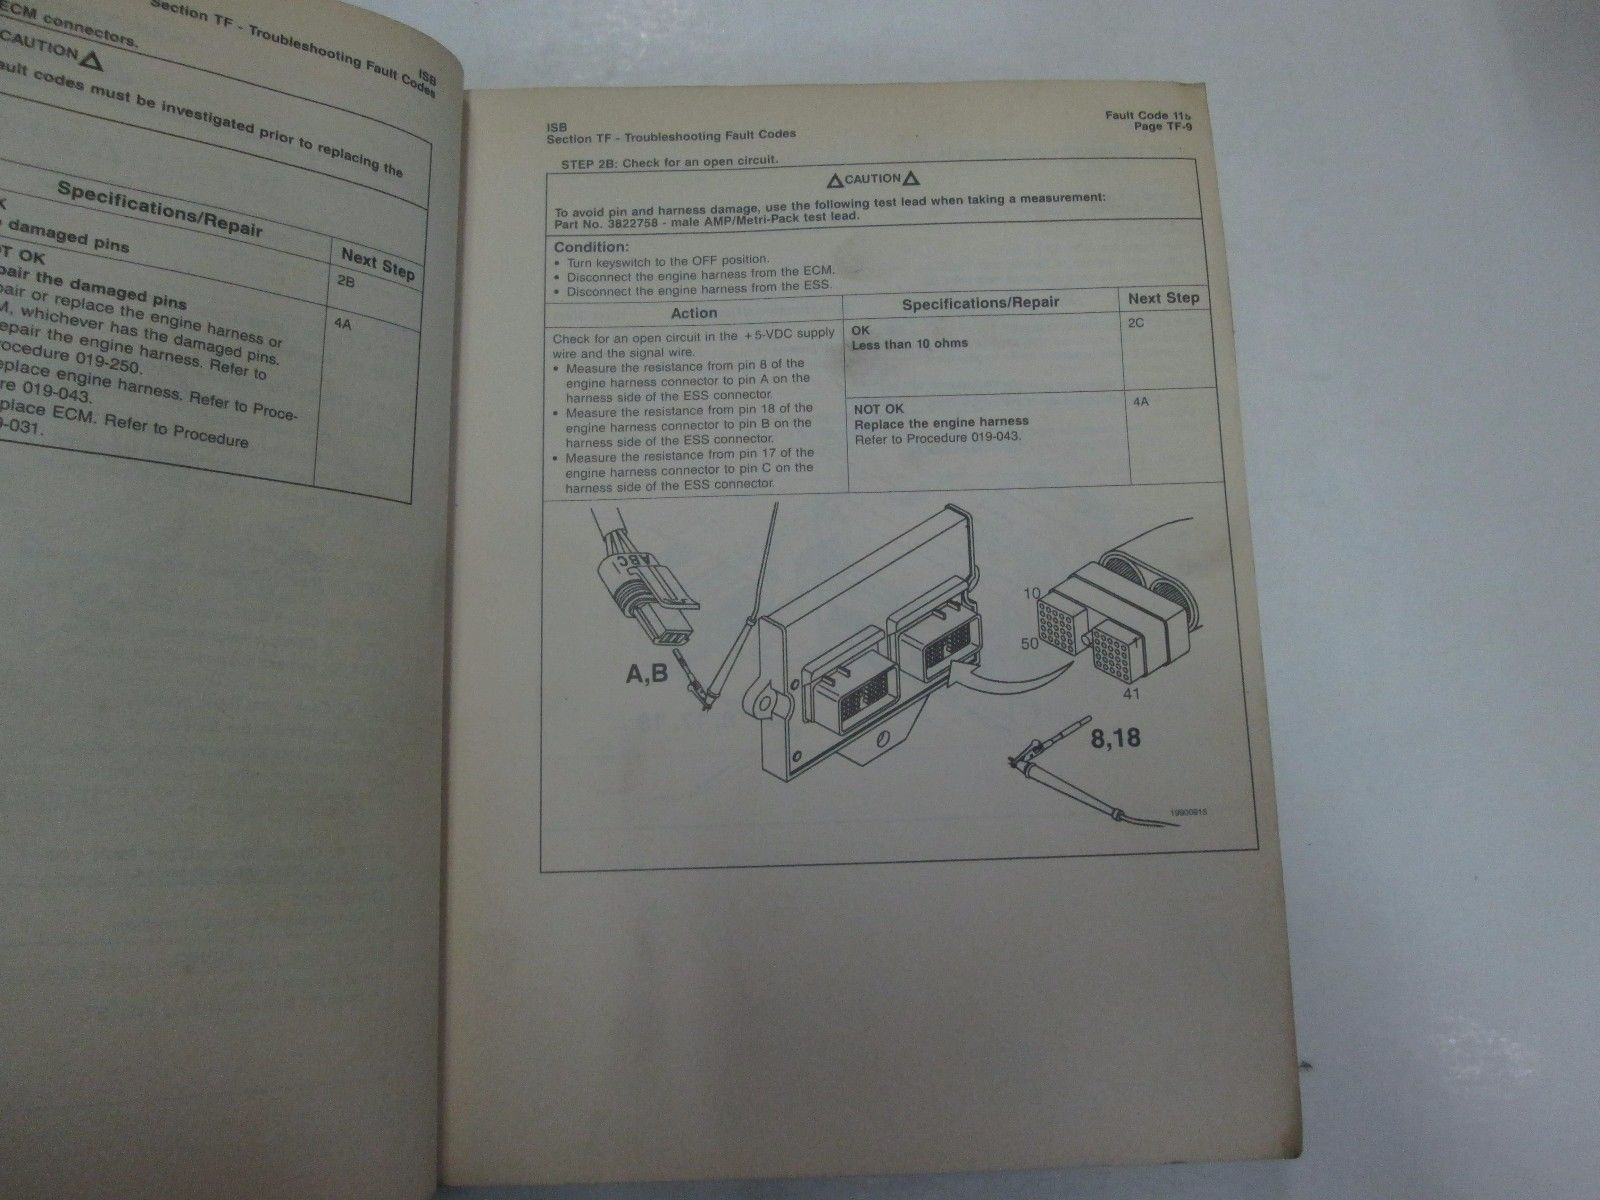 Wiring Harness Diagram As Well As Cummins Isb Ecm Wiring Diagram